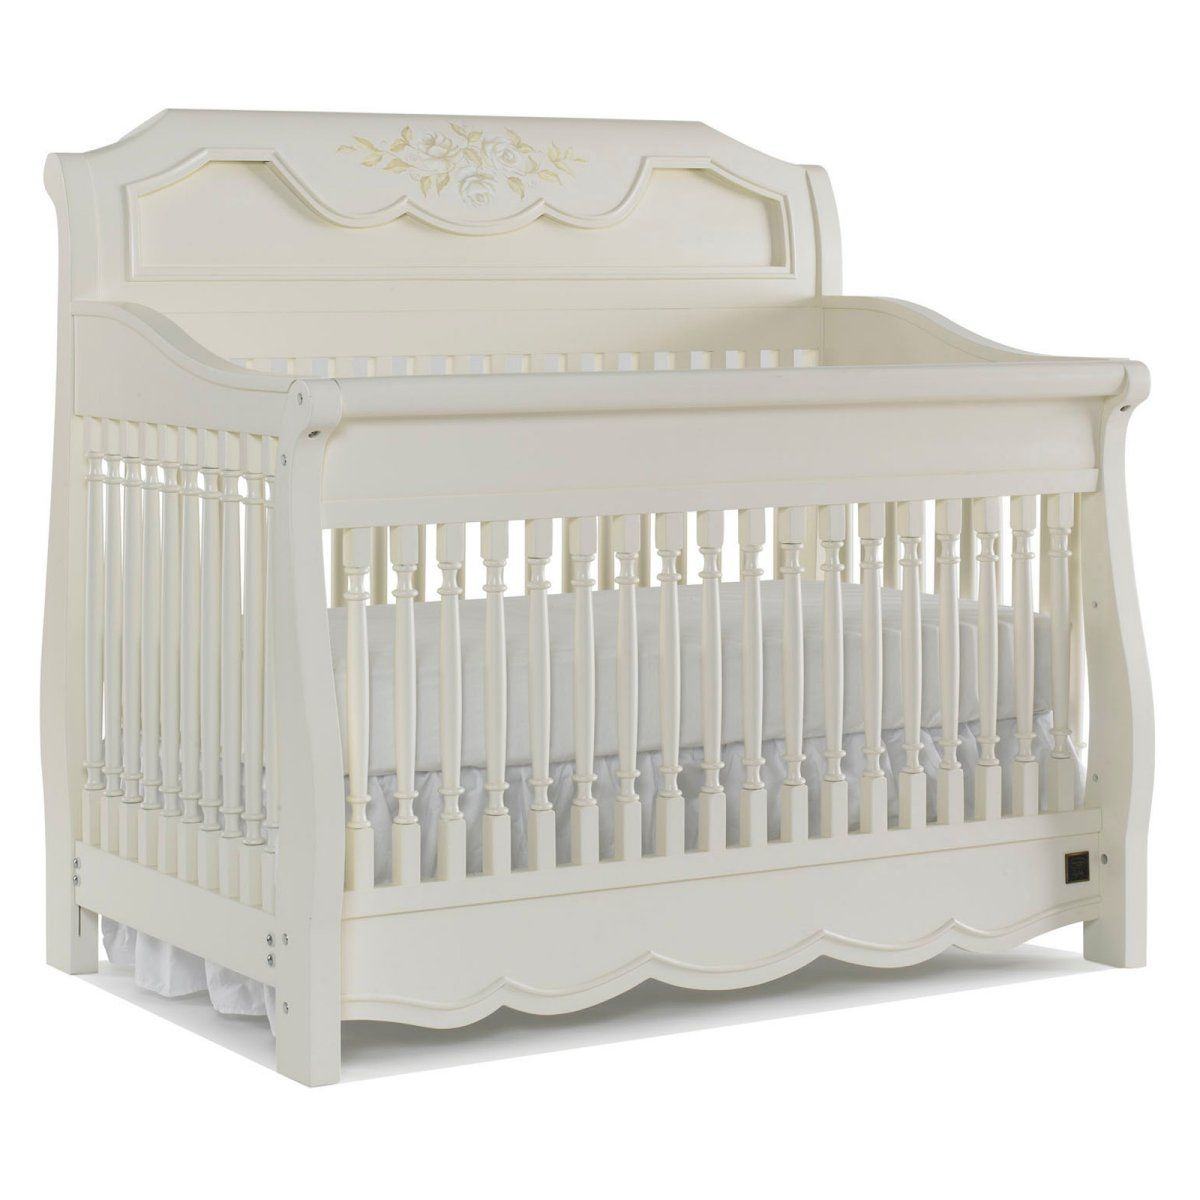 Baby cribs ireland - Baby Cribs On Sale Every Day At Hayneedle In Our Crib Department Shop In Confidence Our Quality Collection Of Standard Portable And Convertible Cribs And